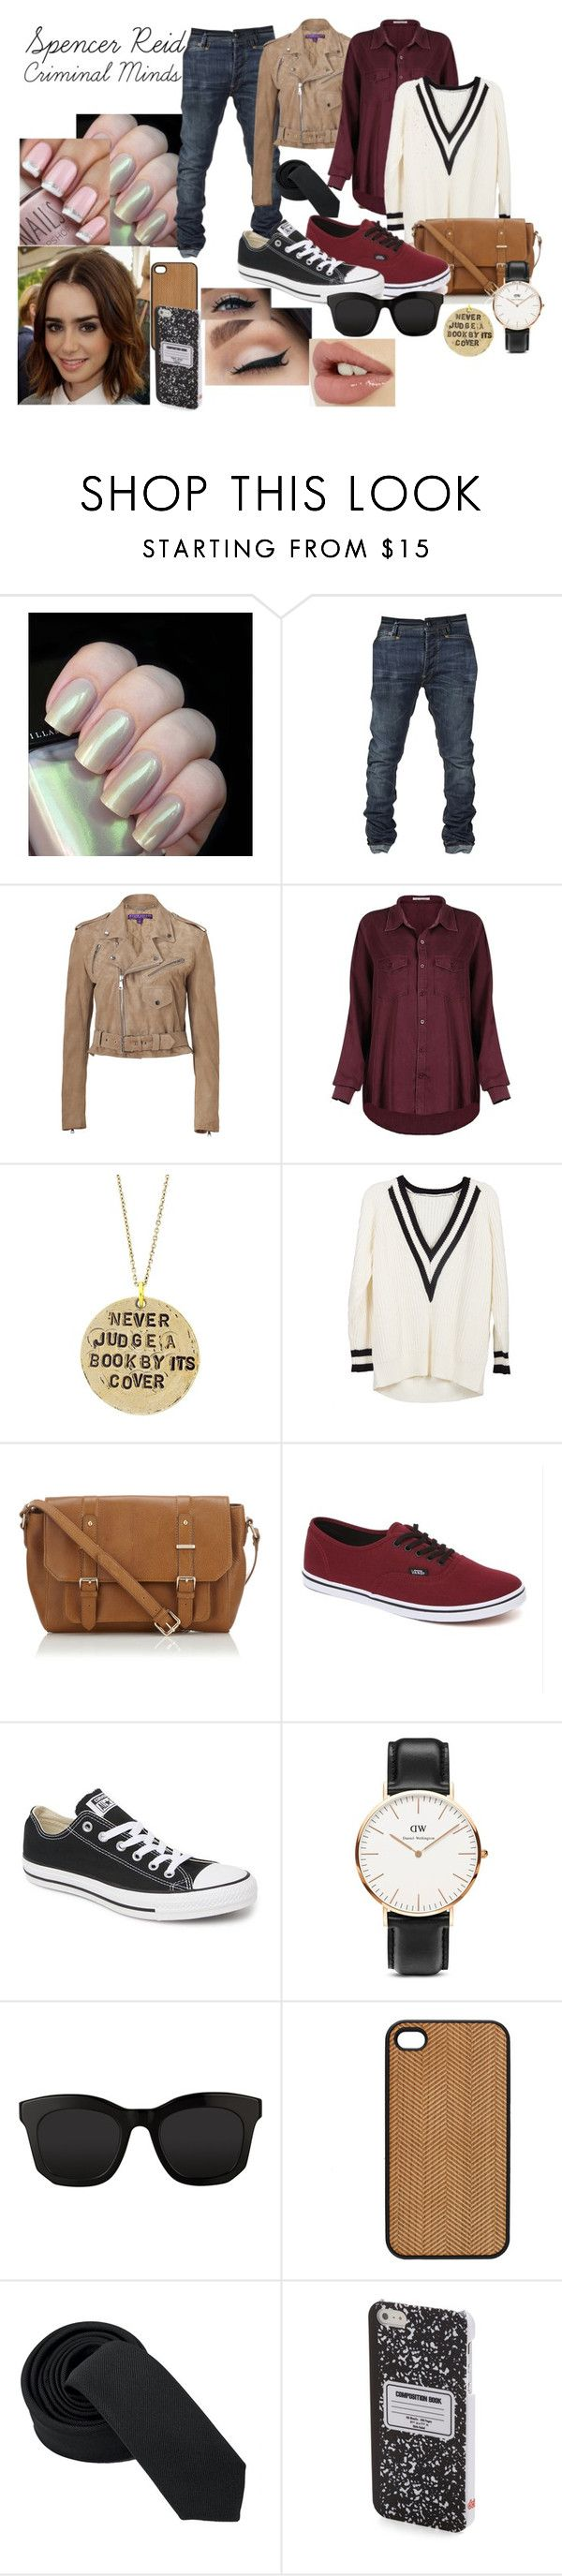 """""""Spencer Reid - Criminal Minds"""" by nerd-inspired ❤ liked on Polyvore featuring Ralph Lauren Collection, Alisa Michelle, Monsoon, Vans, Converse, Daniel Wellington, STELLA McCARTNEY, Terracotta New York and DCI"""